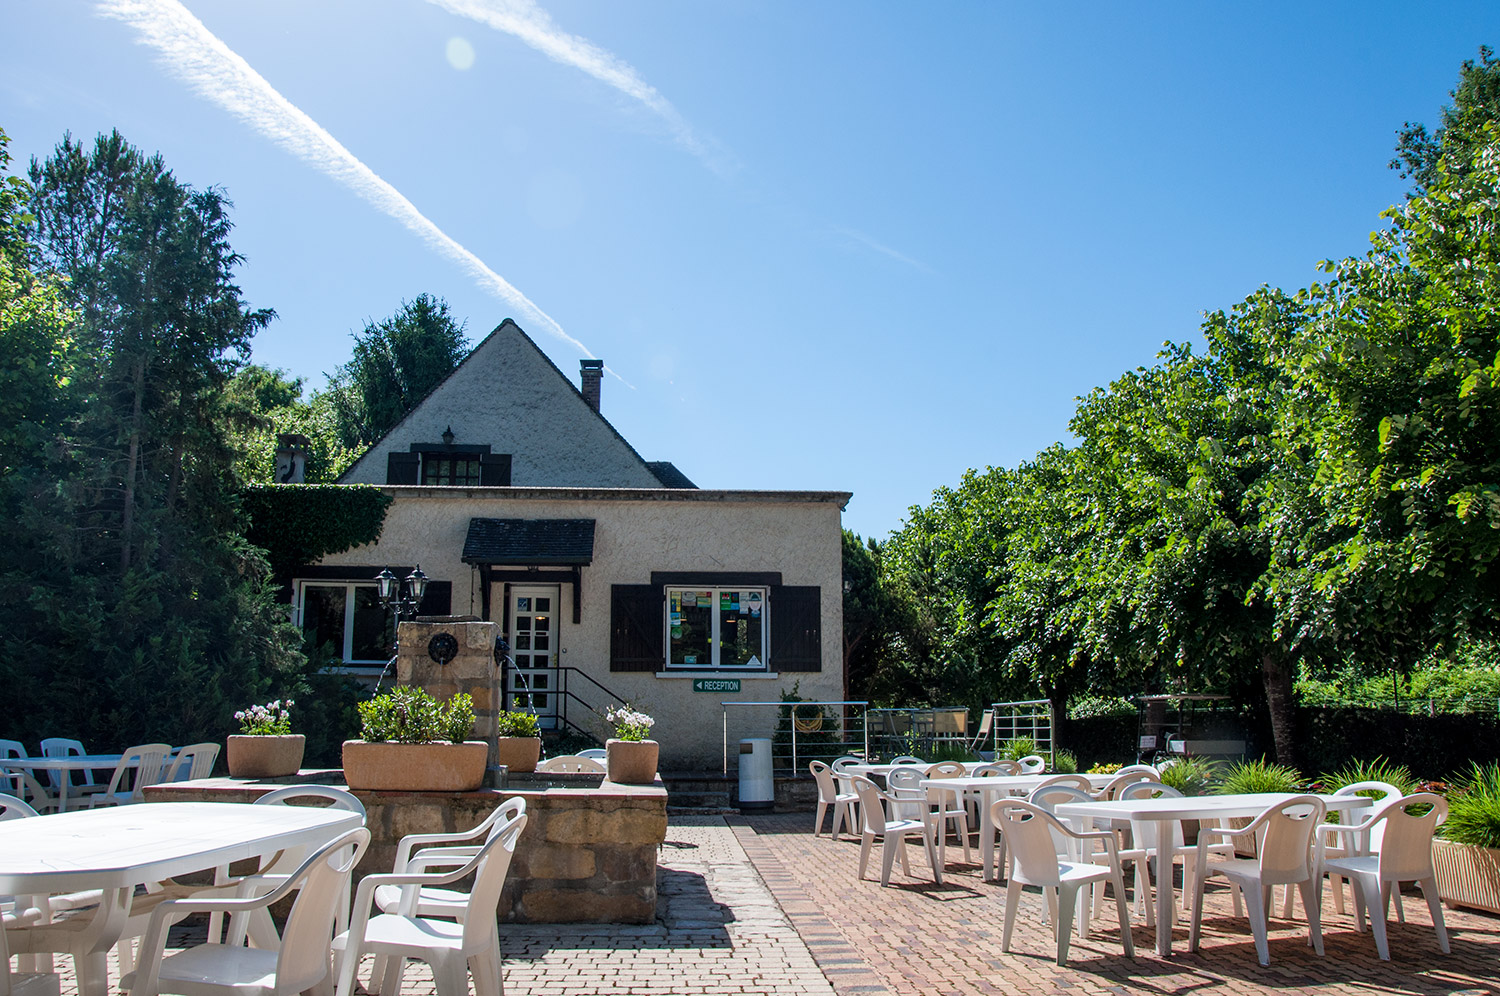 Les Courtilles du Lido reception & cafe